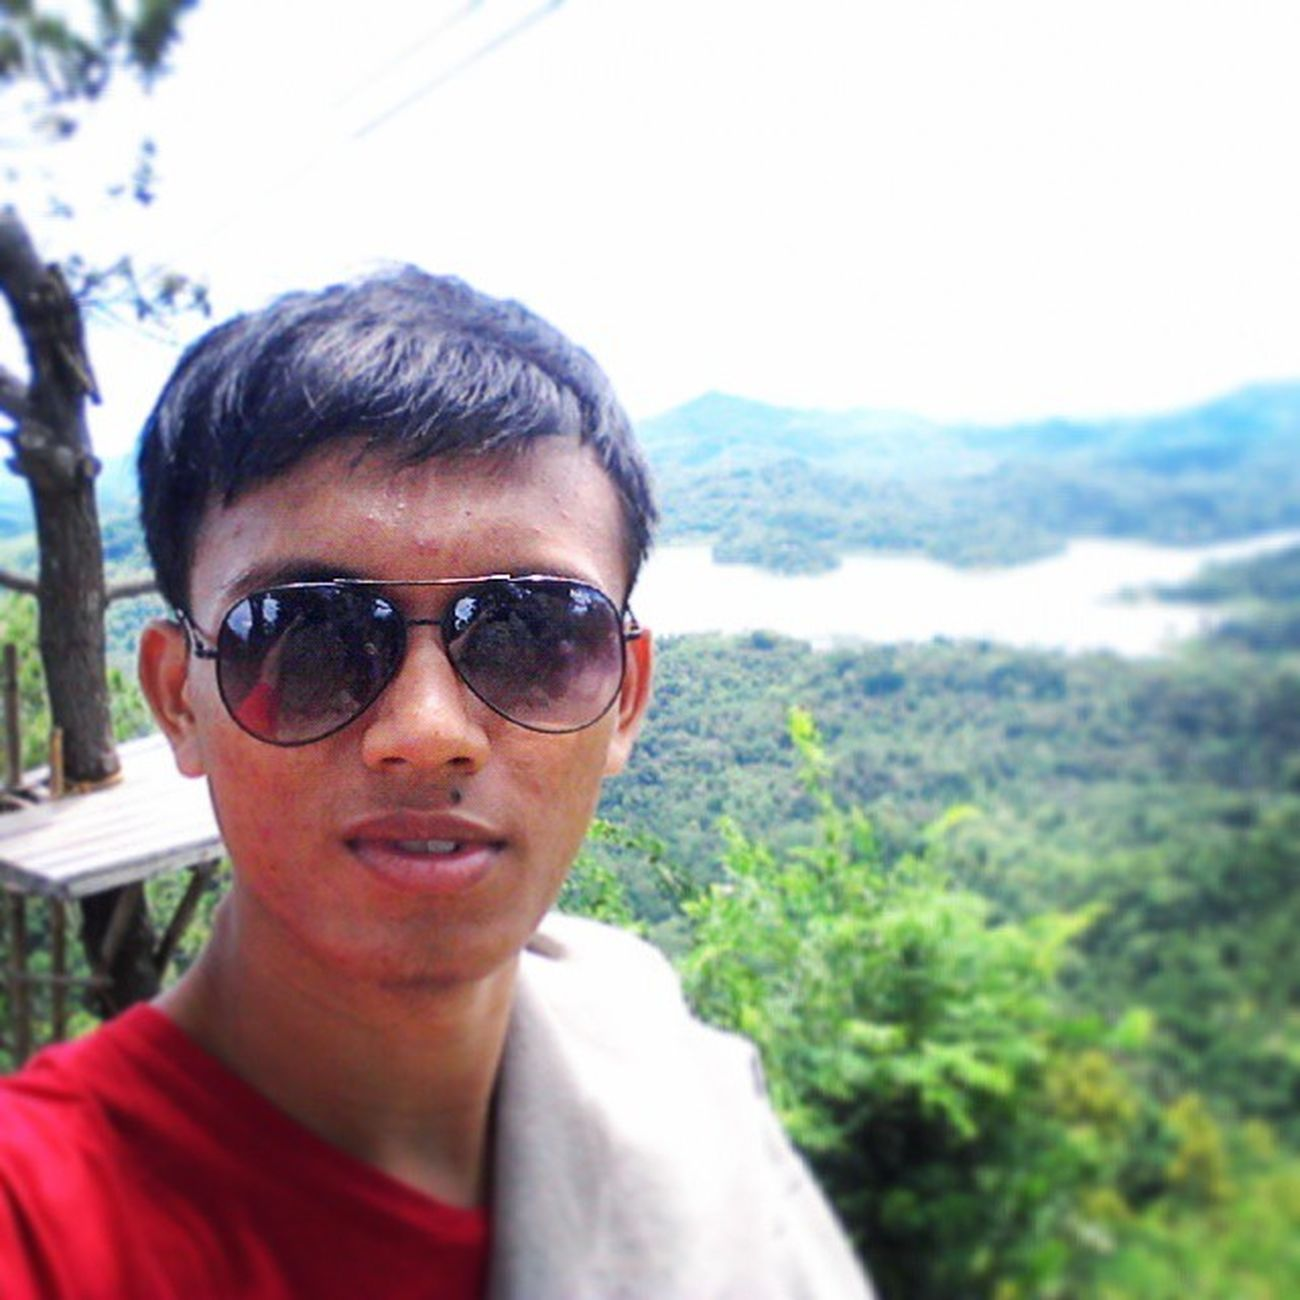 Kalibiru Explore Wates Travel Holliday Wonderful INDONESIA Samsungcamera New Place Discover